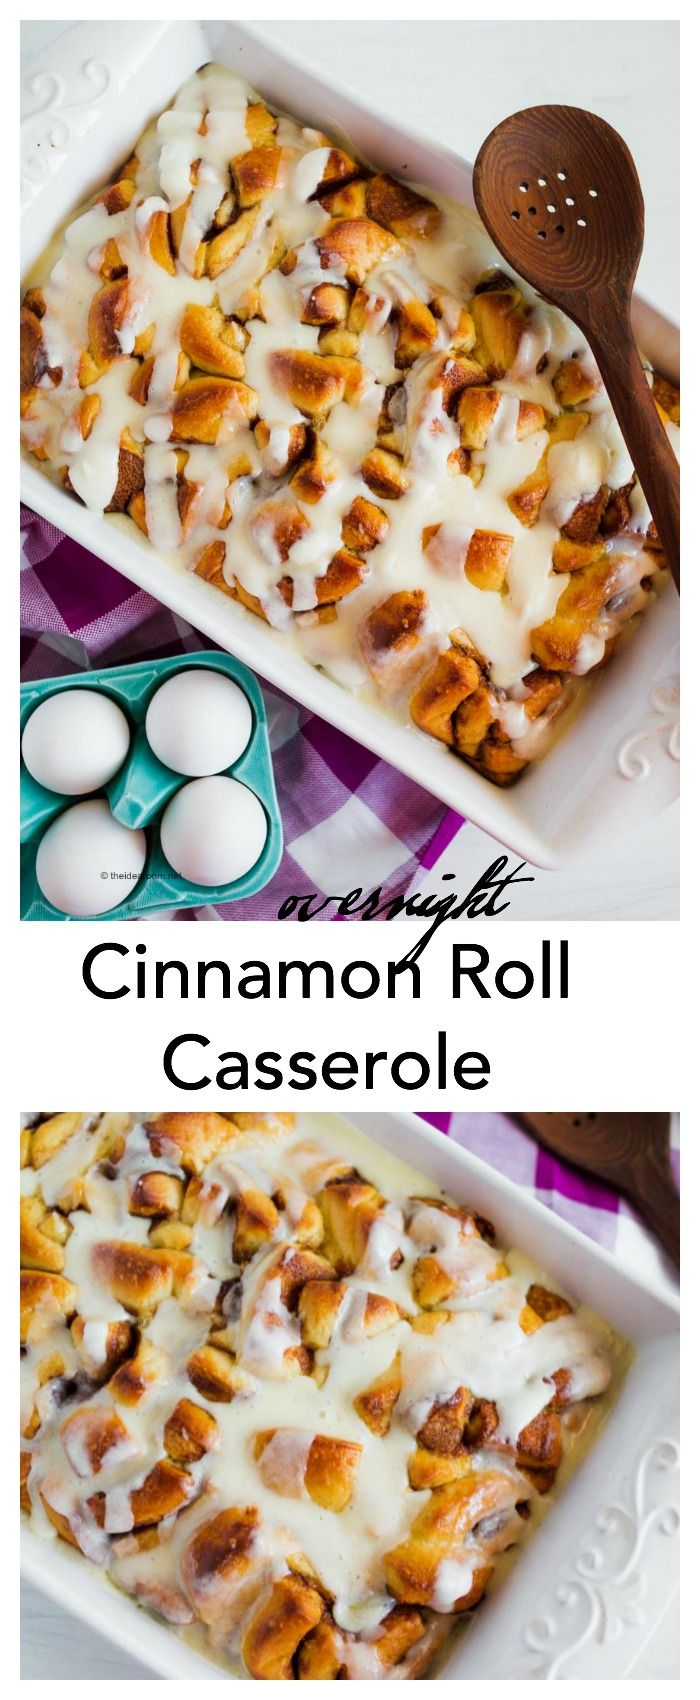 Looking for an easy Breakfast idea for Christmas Morning. Check out this delicious Overnight Cinnamon Roll Casserole Recipe.